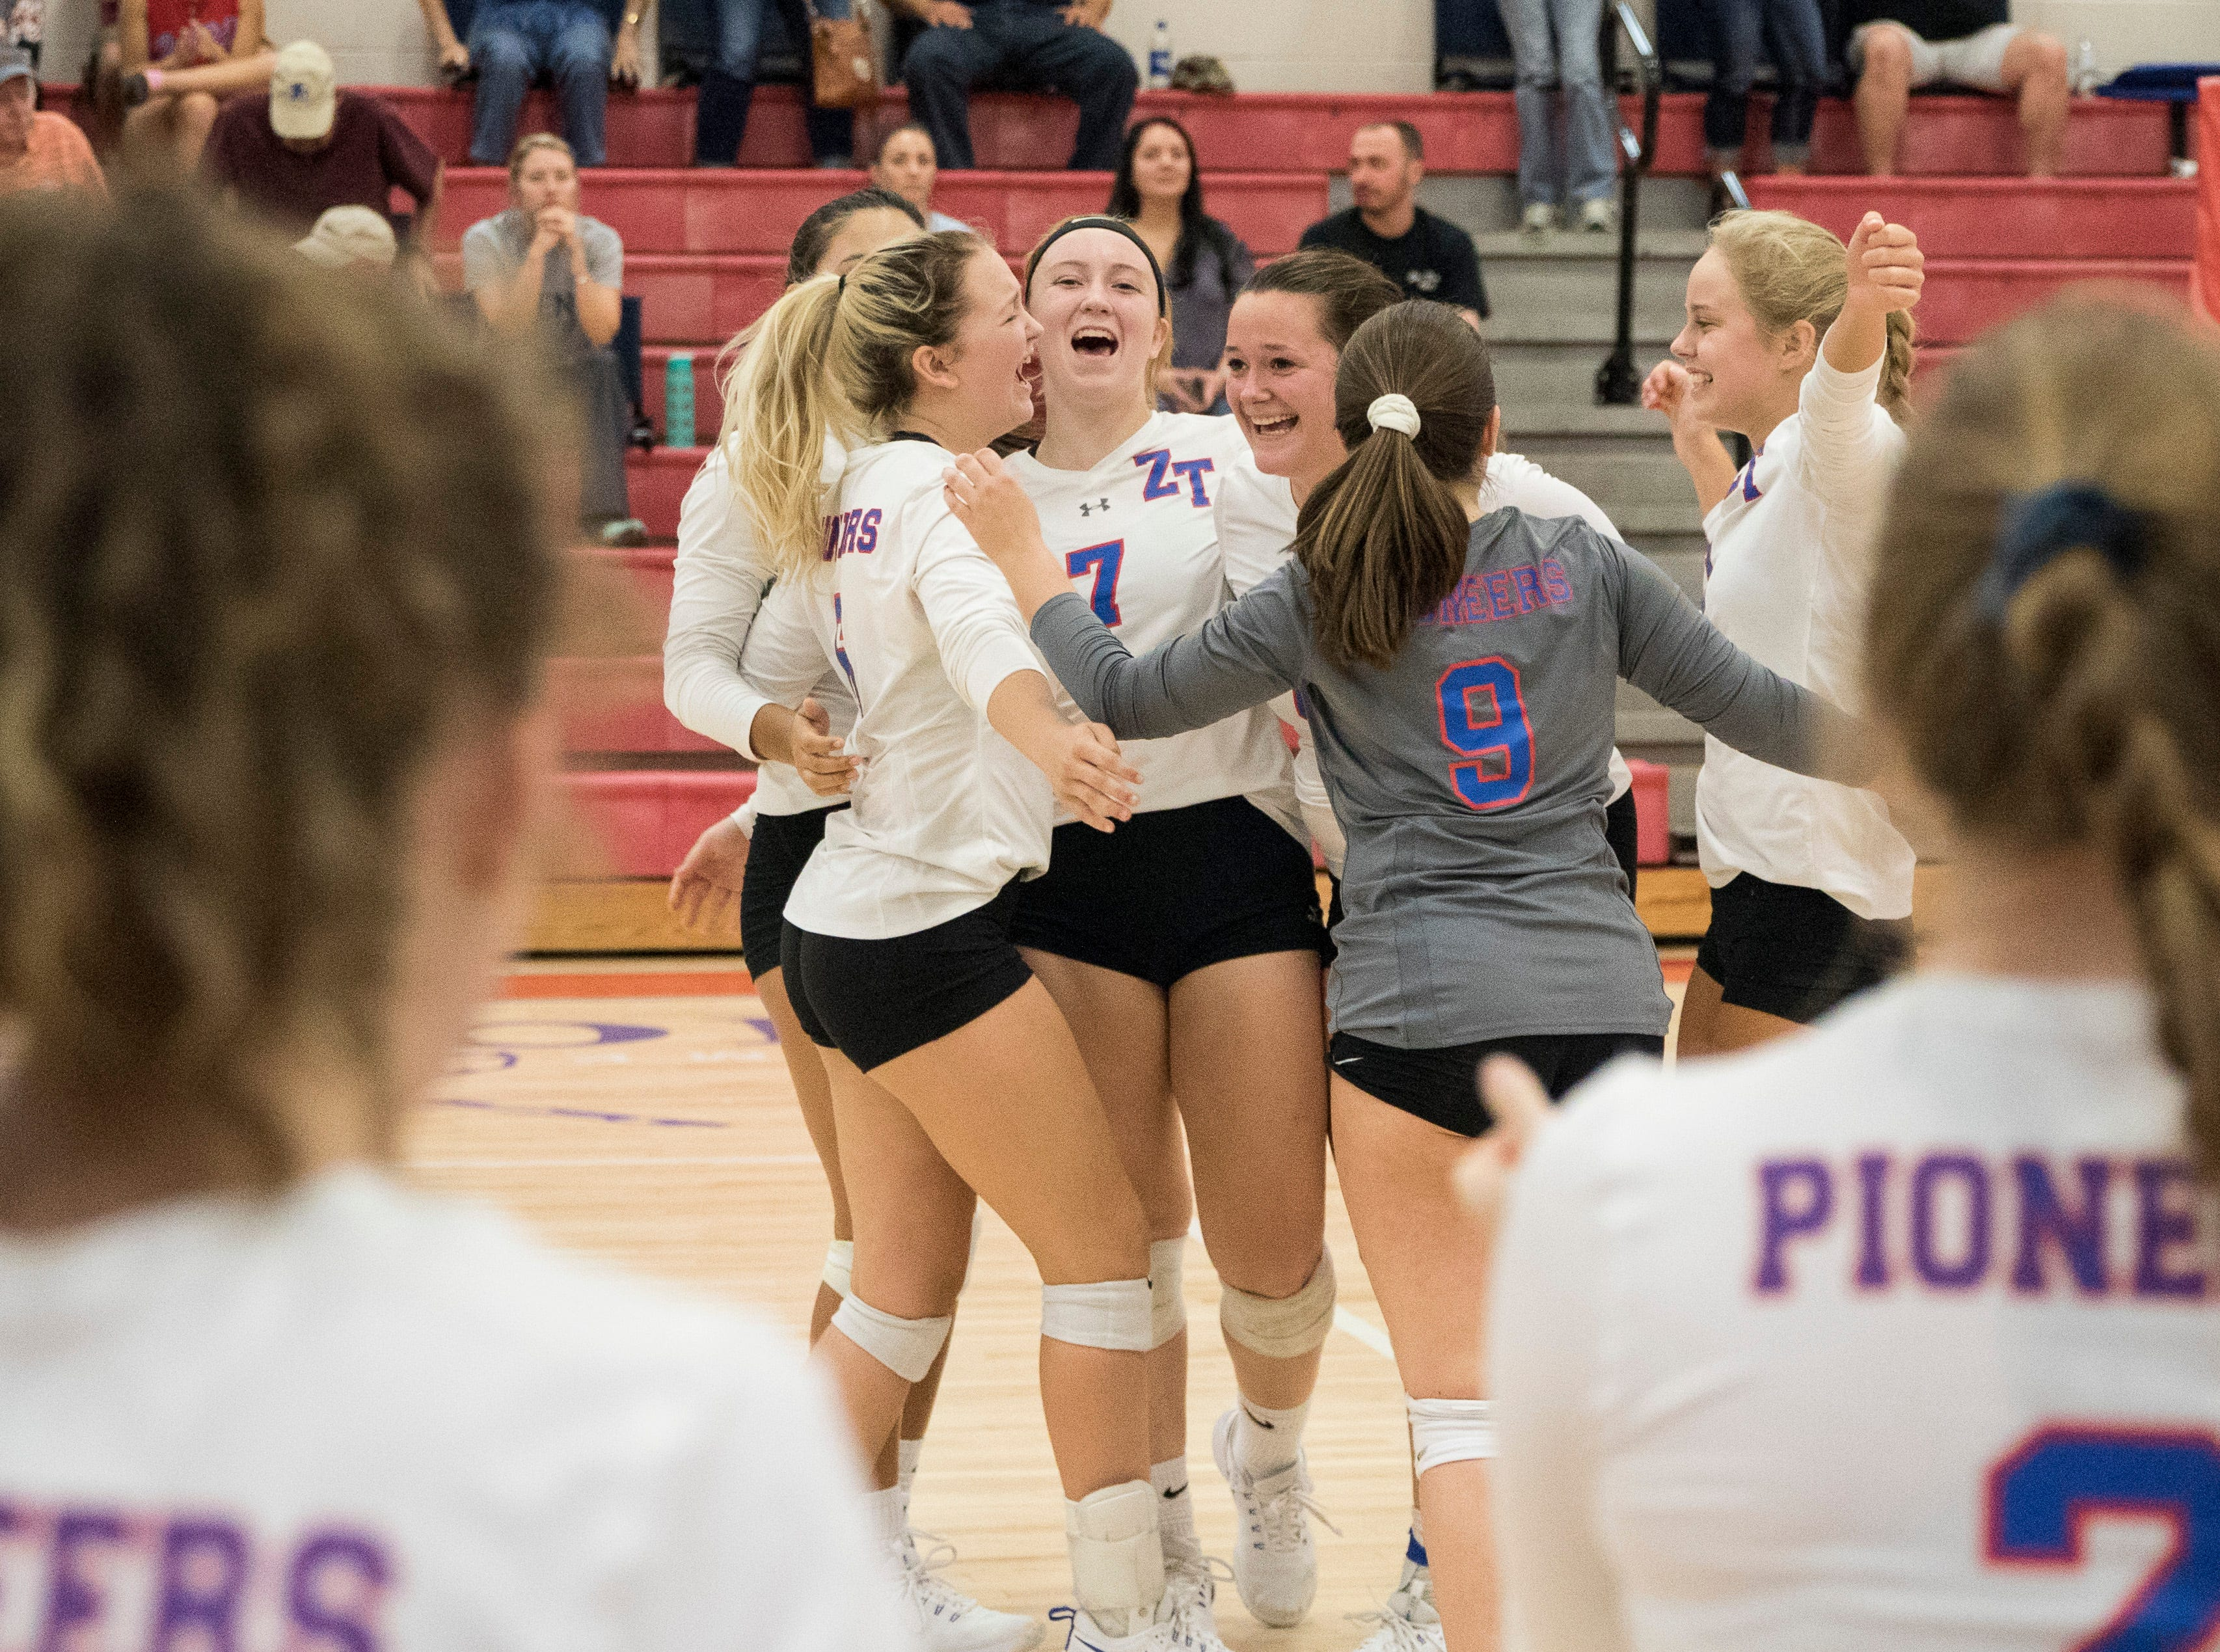 Zane Trace's girls volleyball team celebrates their 3-0 win over Adena Thursday night at Zane Trace High School. The win gives the team an overall record of 6-3 for the season so far.